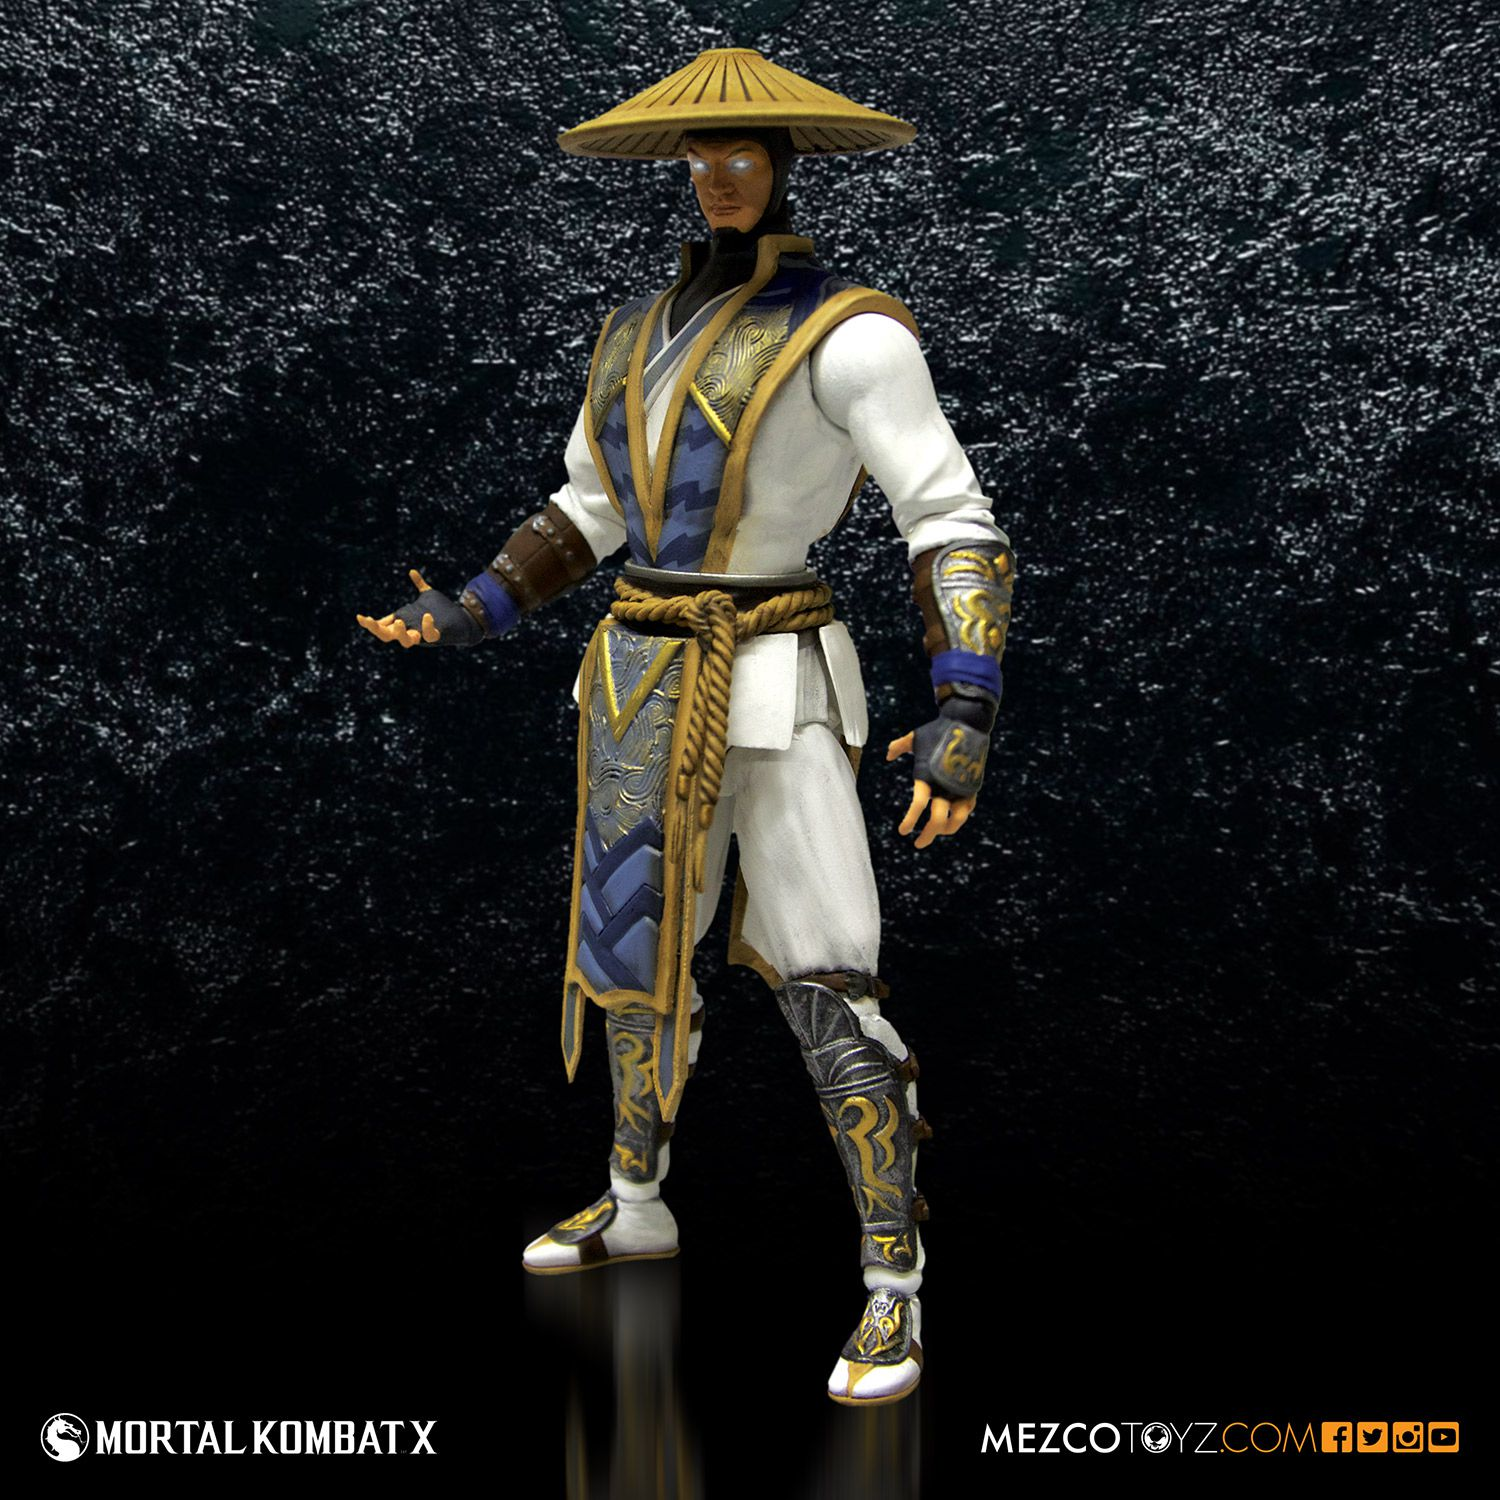 Mortal Kombat | Euro Palace Casino Blog